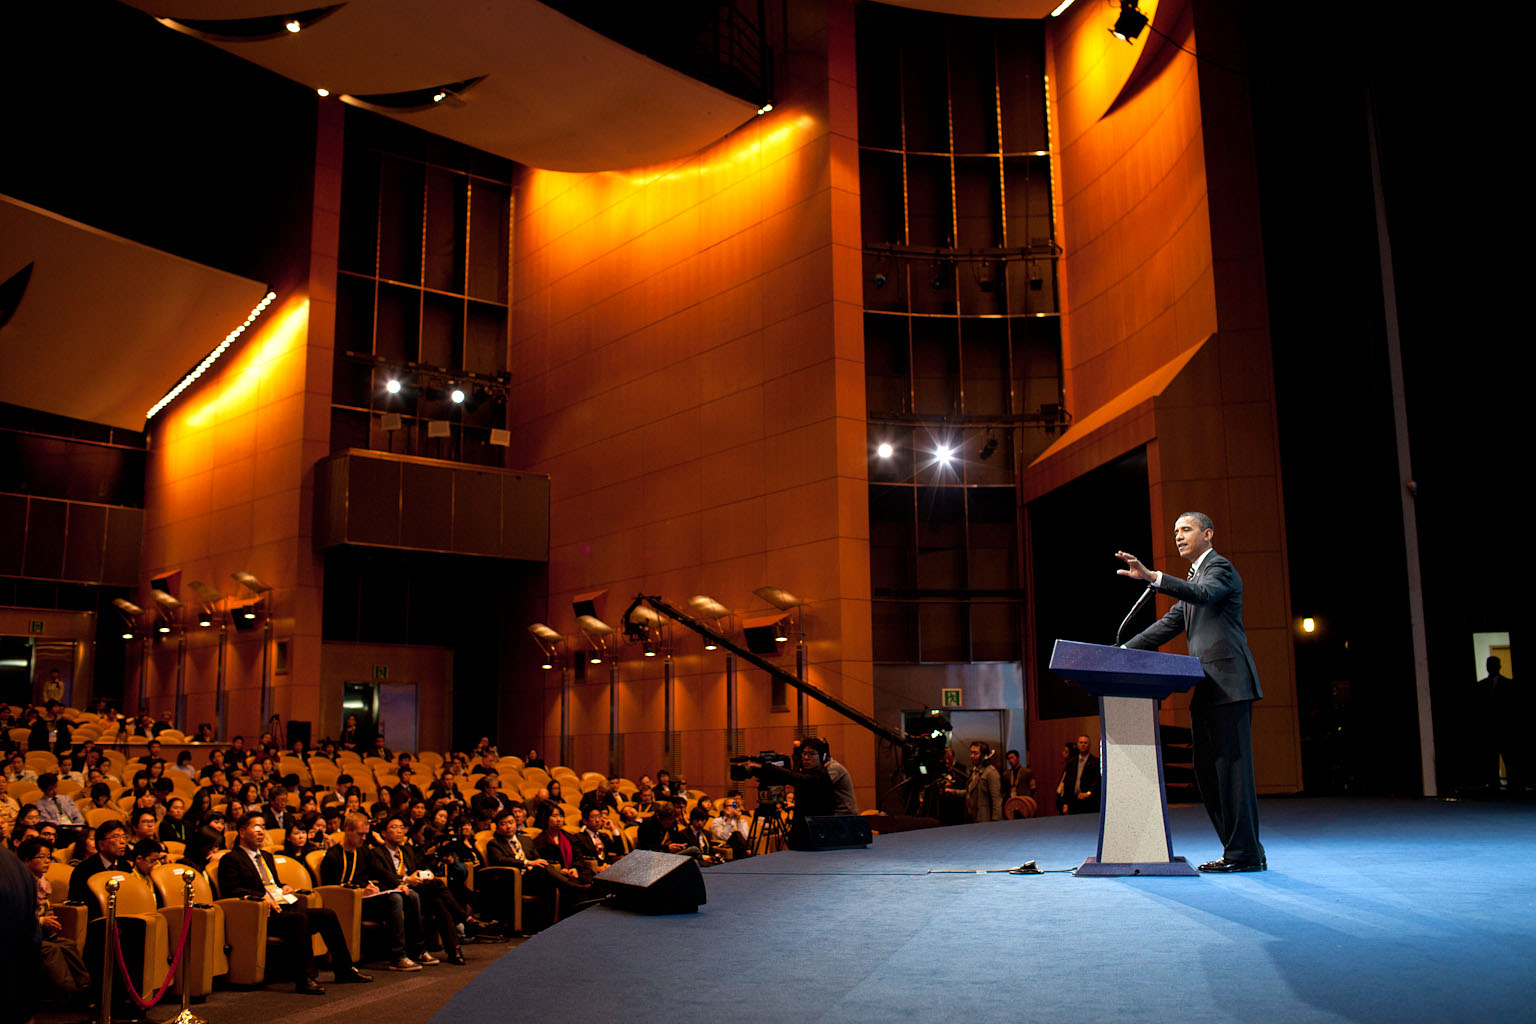 President Barack Obama at a Press Conference at the G20 Summit at Coex Center in Seoul, South Korea